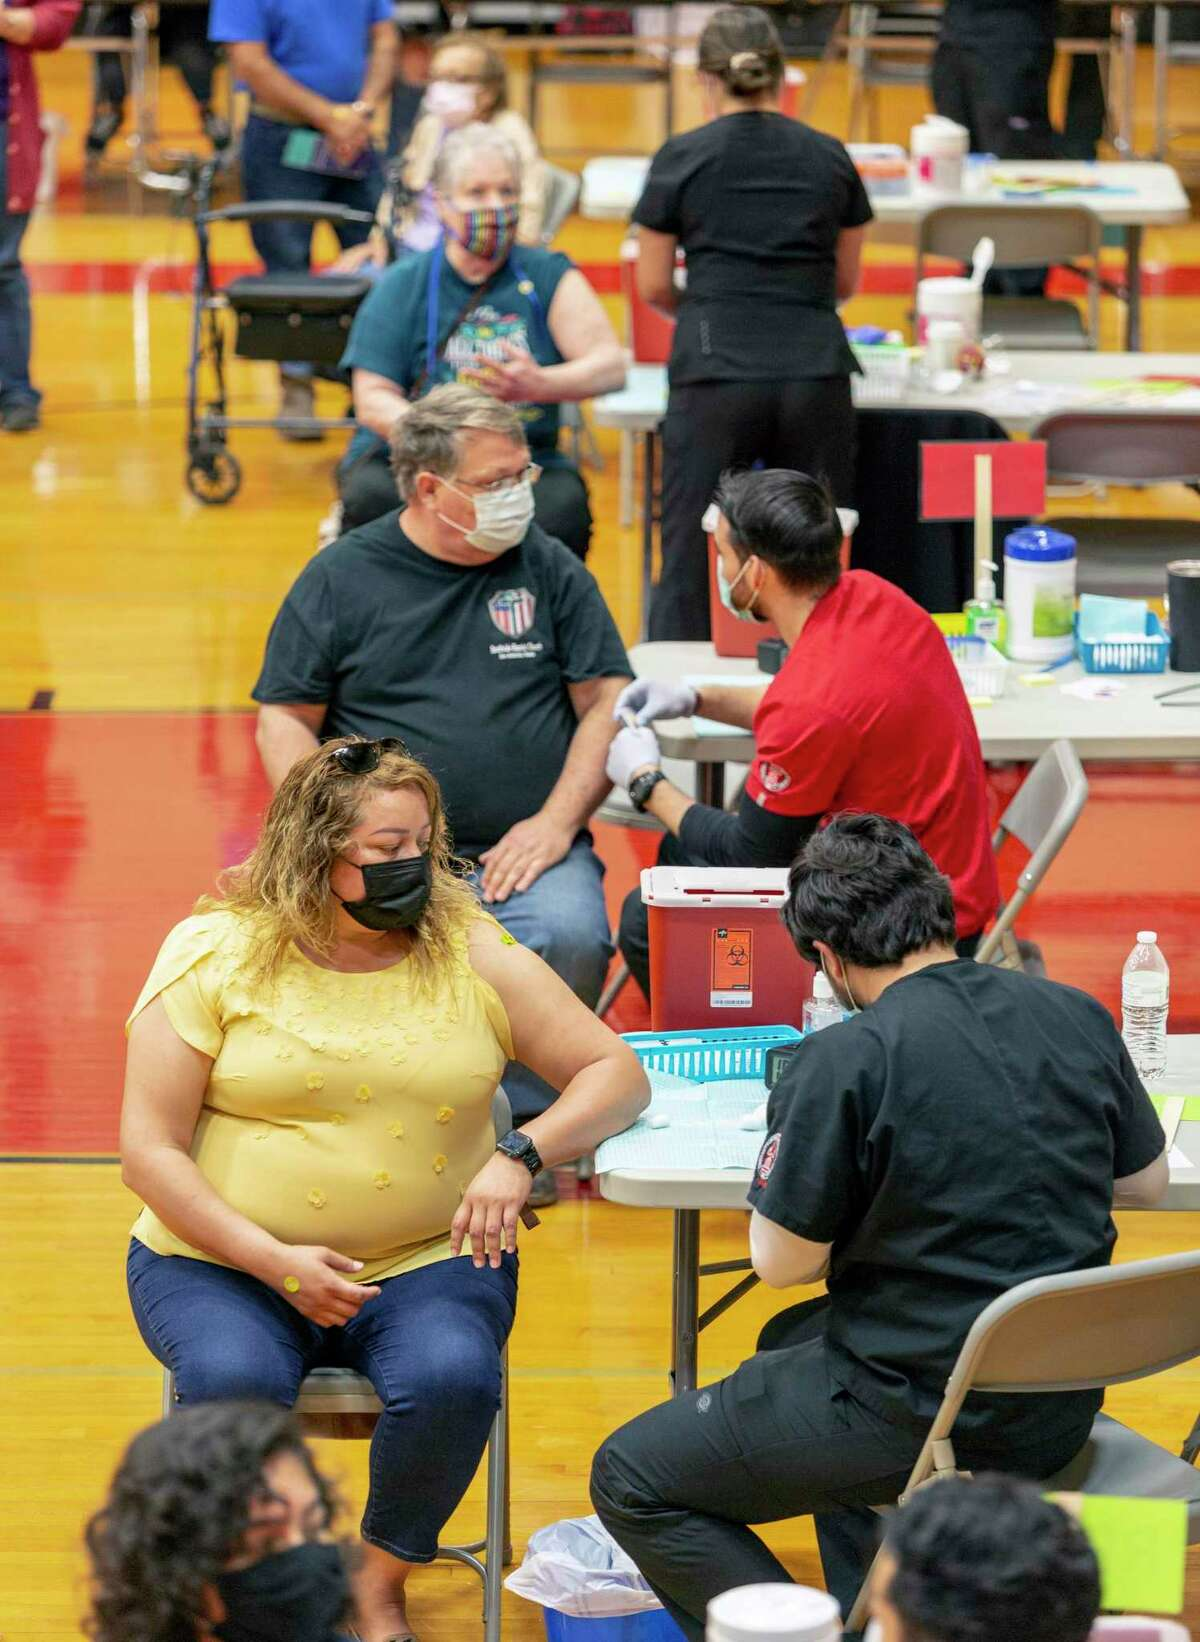 """Alma Diaz, front left, prepares to receive her COVID-19 coronavirus vaccine Saturday, April 10, 2021 at Southside High School during a joint vaccination clinic held by UIW and Southside ISD. """"I'm glad I got this one,"""" Diaz said, referring to the Johnson & Johnson vaccine, which requires just one shot."""